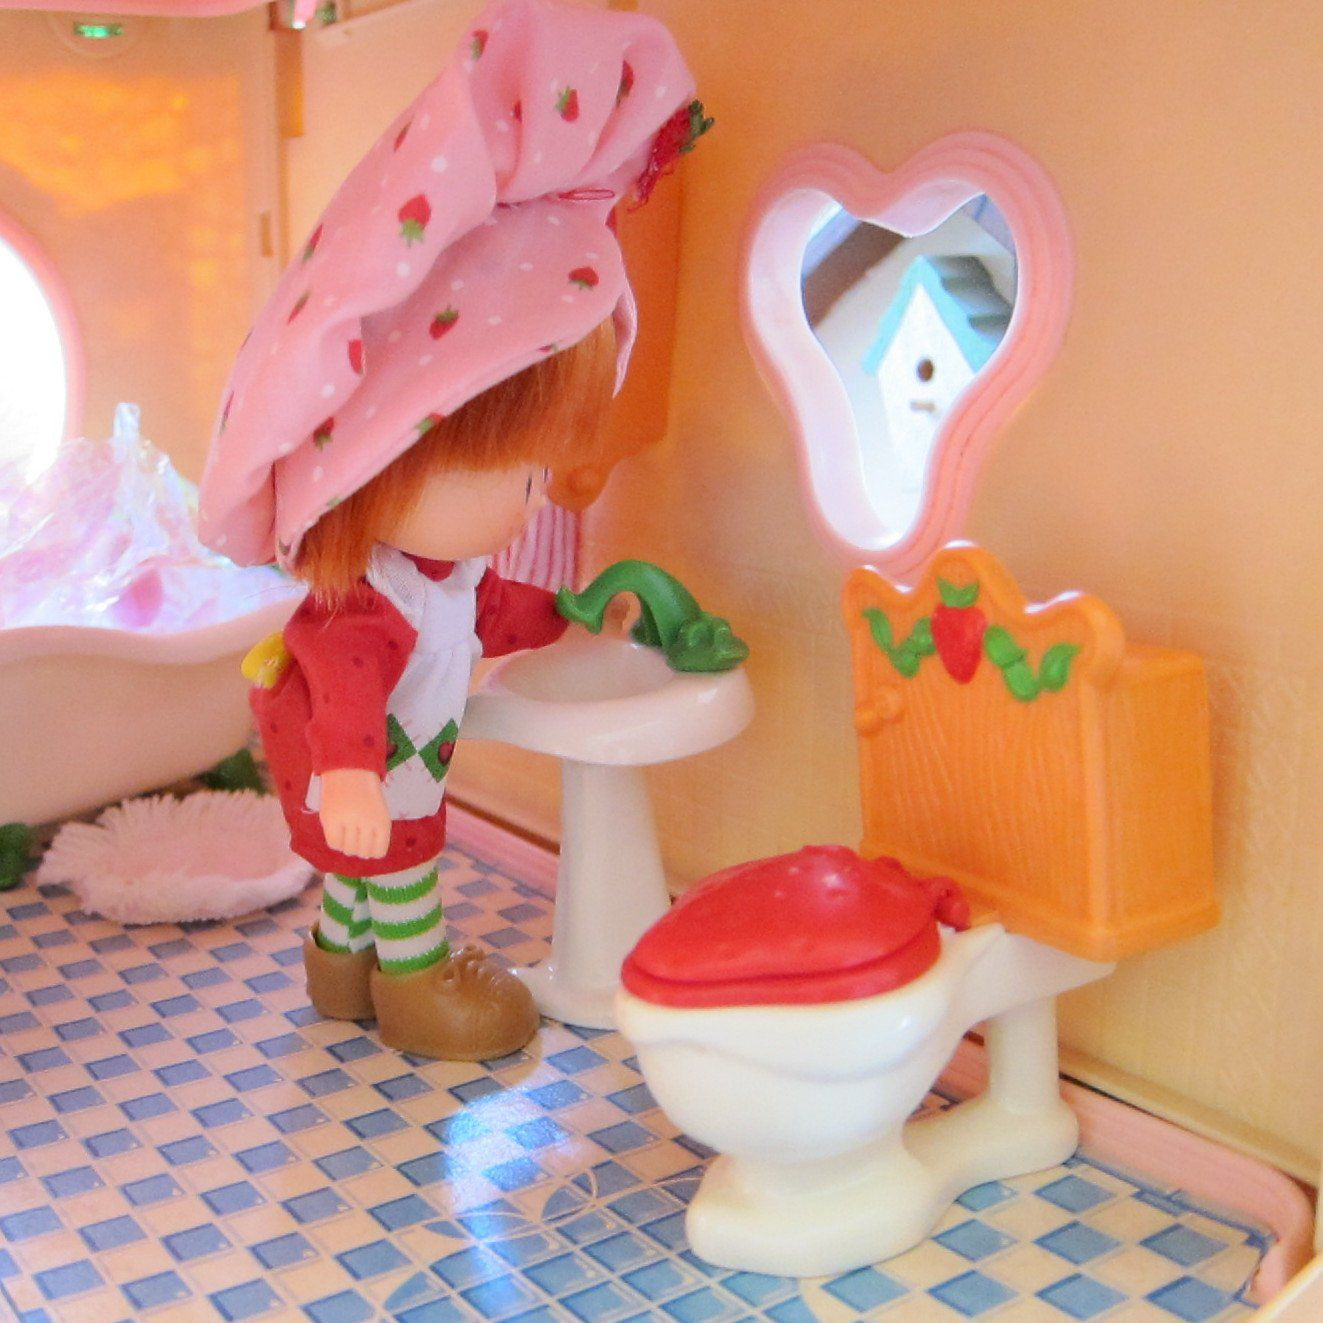 http://www.browneyedrose.com/collections/berry-happy-home-dollhouse/products/bathroom-sink-for-strawberry-shortcake-berry-happy-home-dollhouse